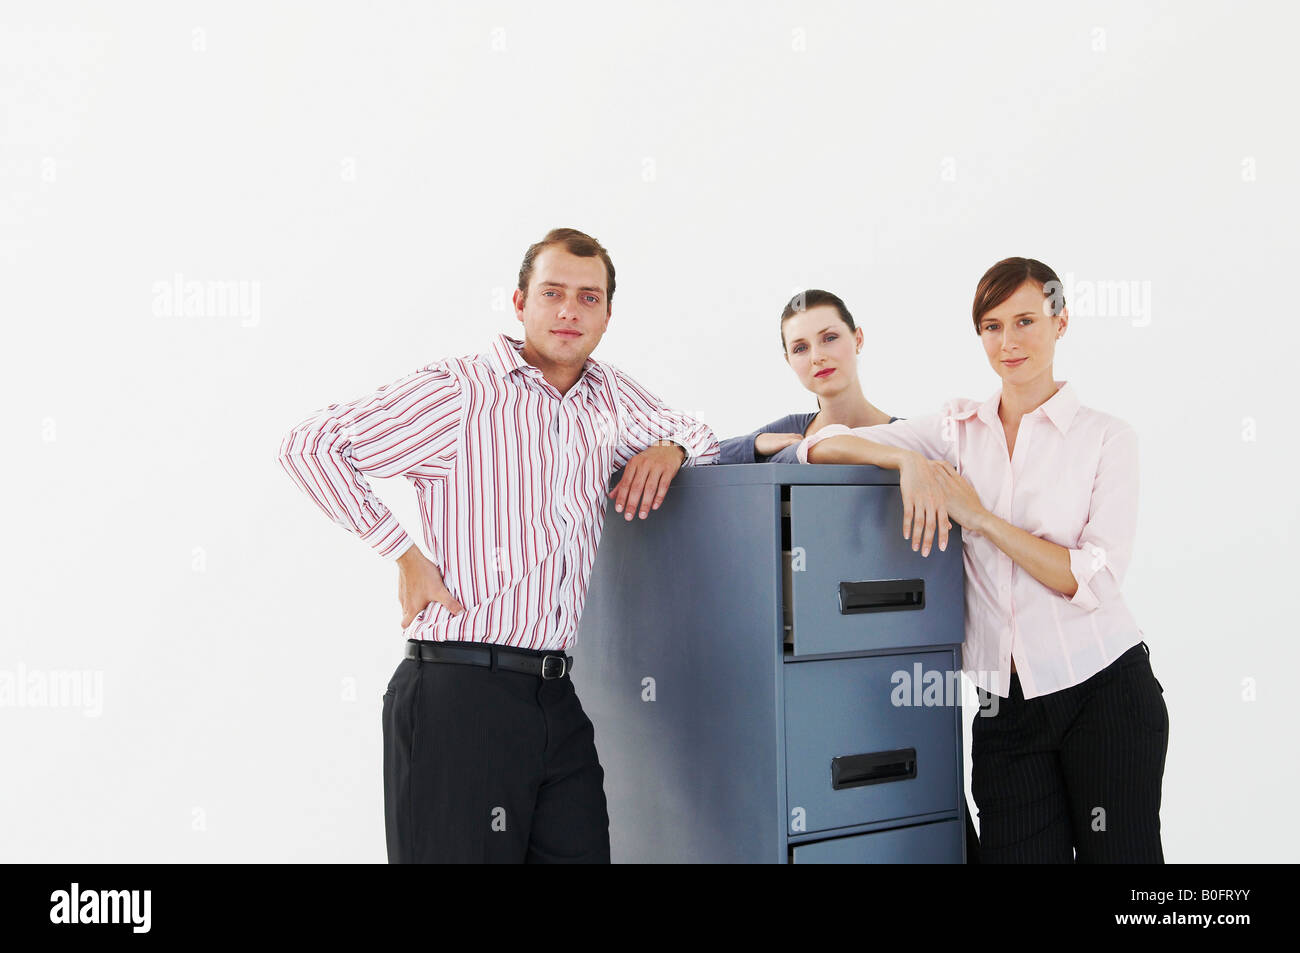 Three business people lean on cabinet - Stock Image